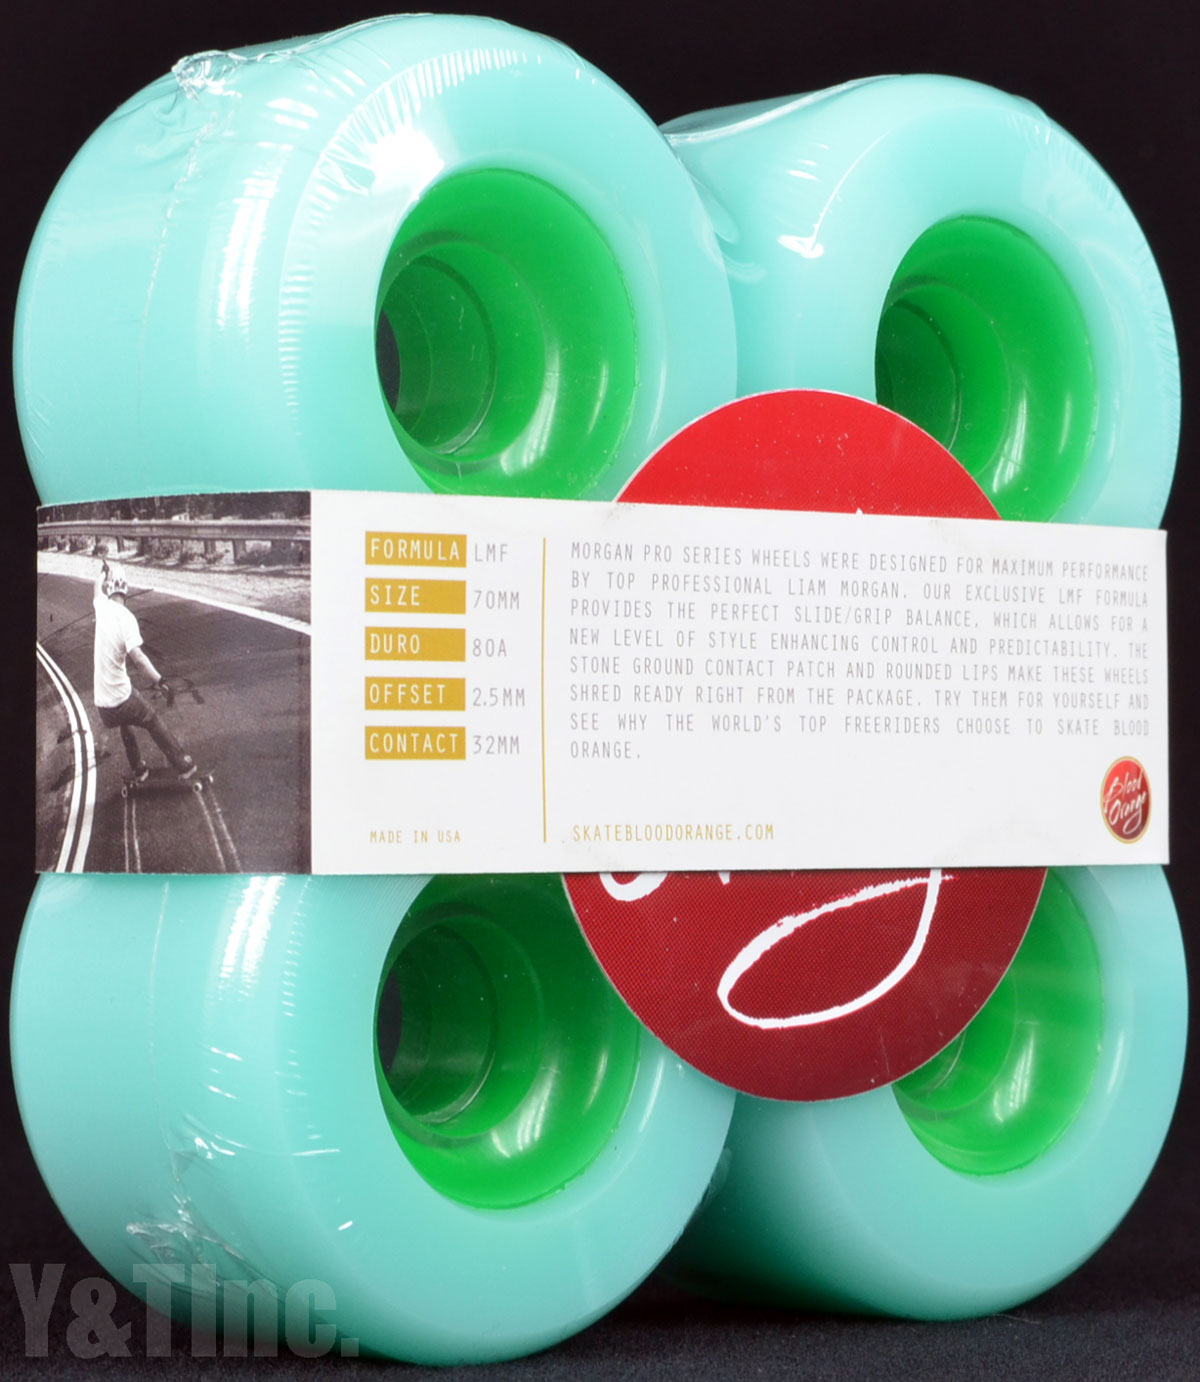 BLOOD ORANGE MORGAN 70mm 80a SEAFOAM 3